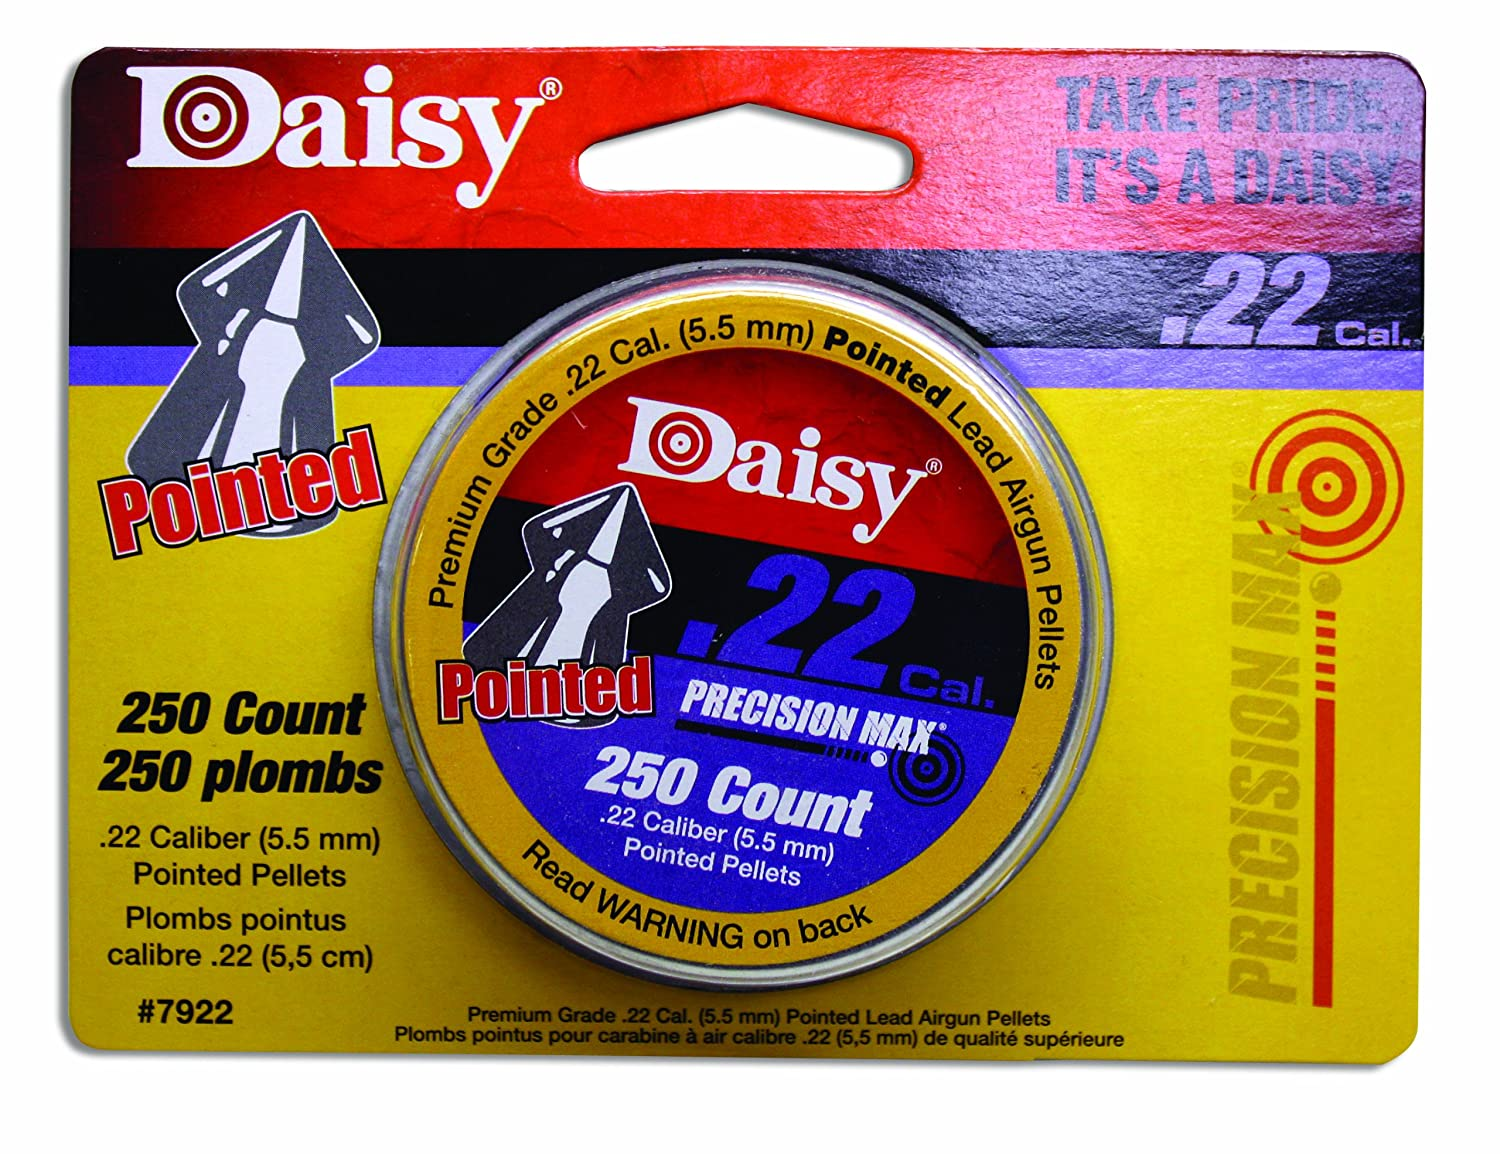 Amazon.com : Daisy Outdoor Products .22 Cal. Pointed Pellets 250ct (Silver, 5.5 mm)